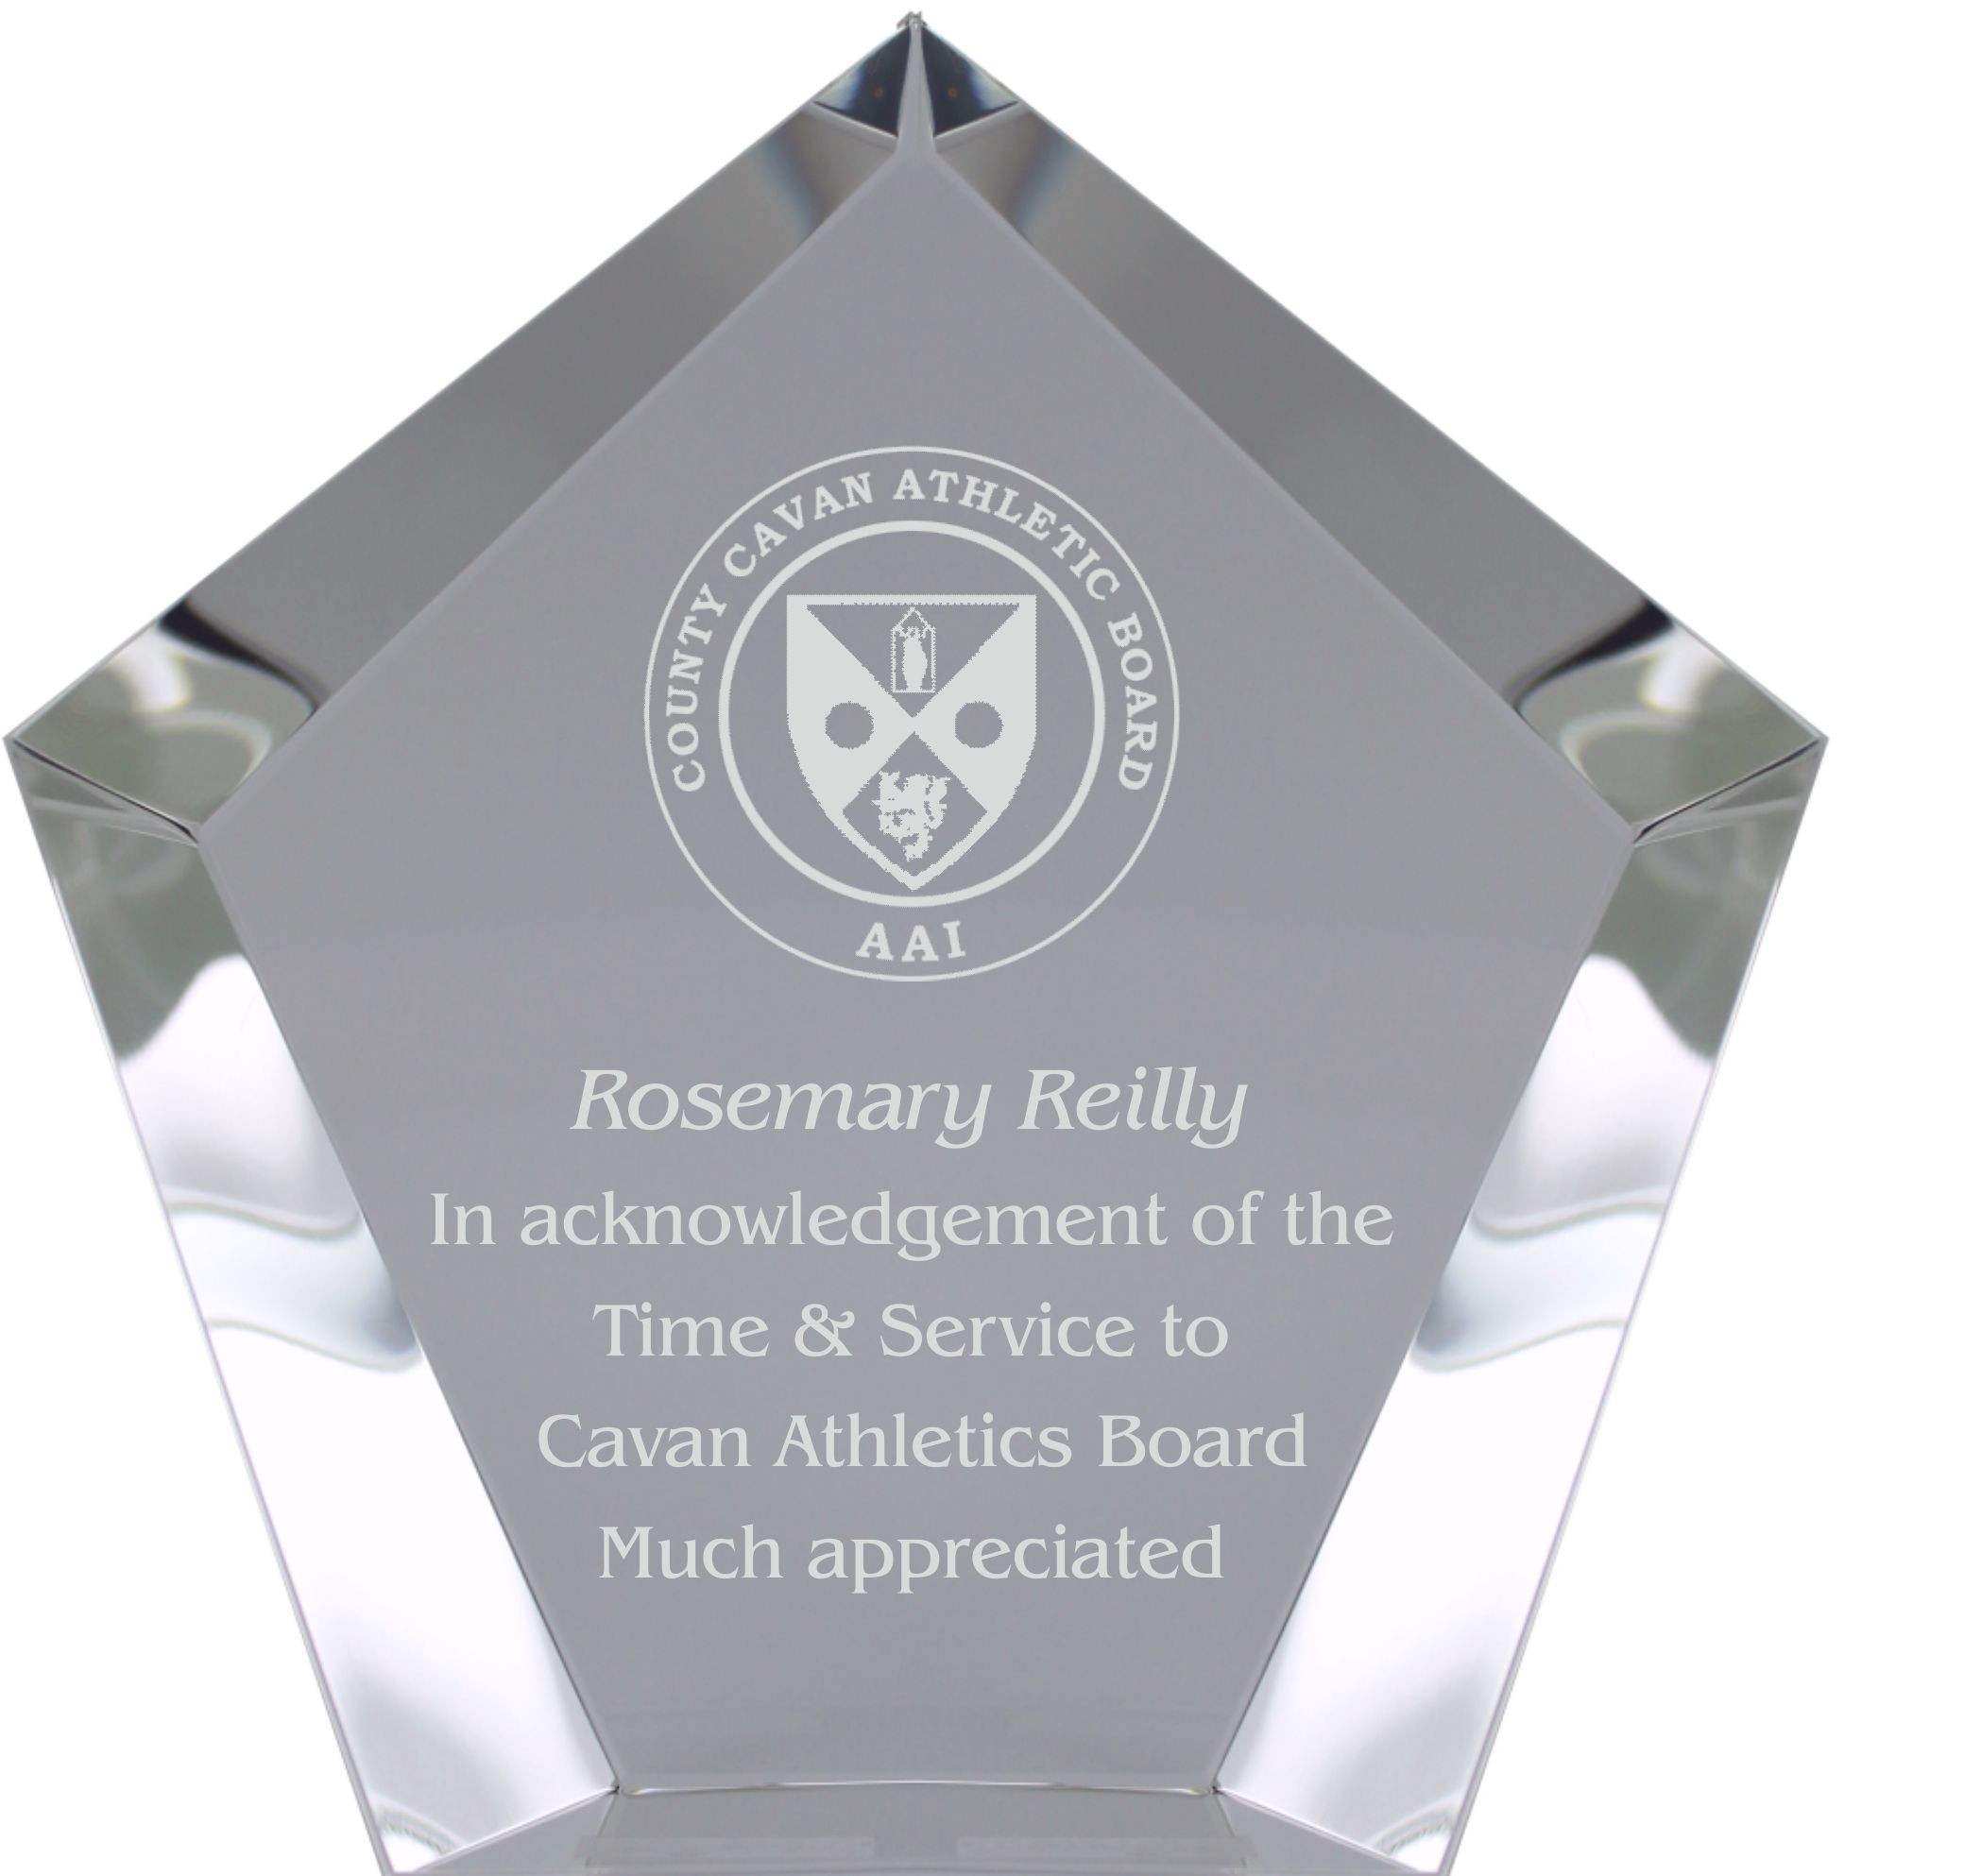 CC765 Series Glass Award Image